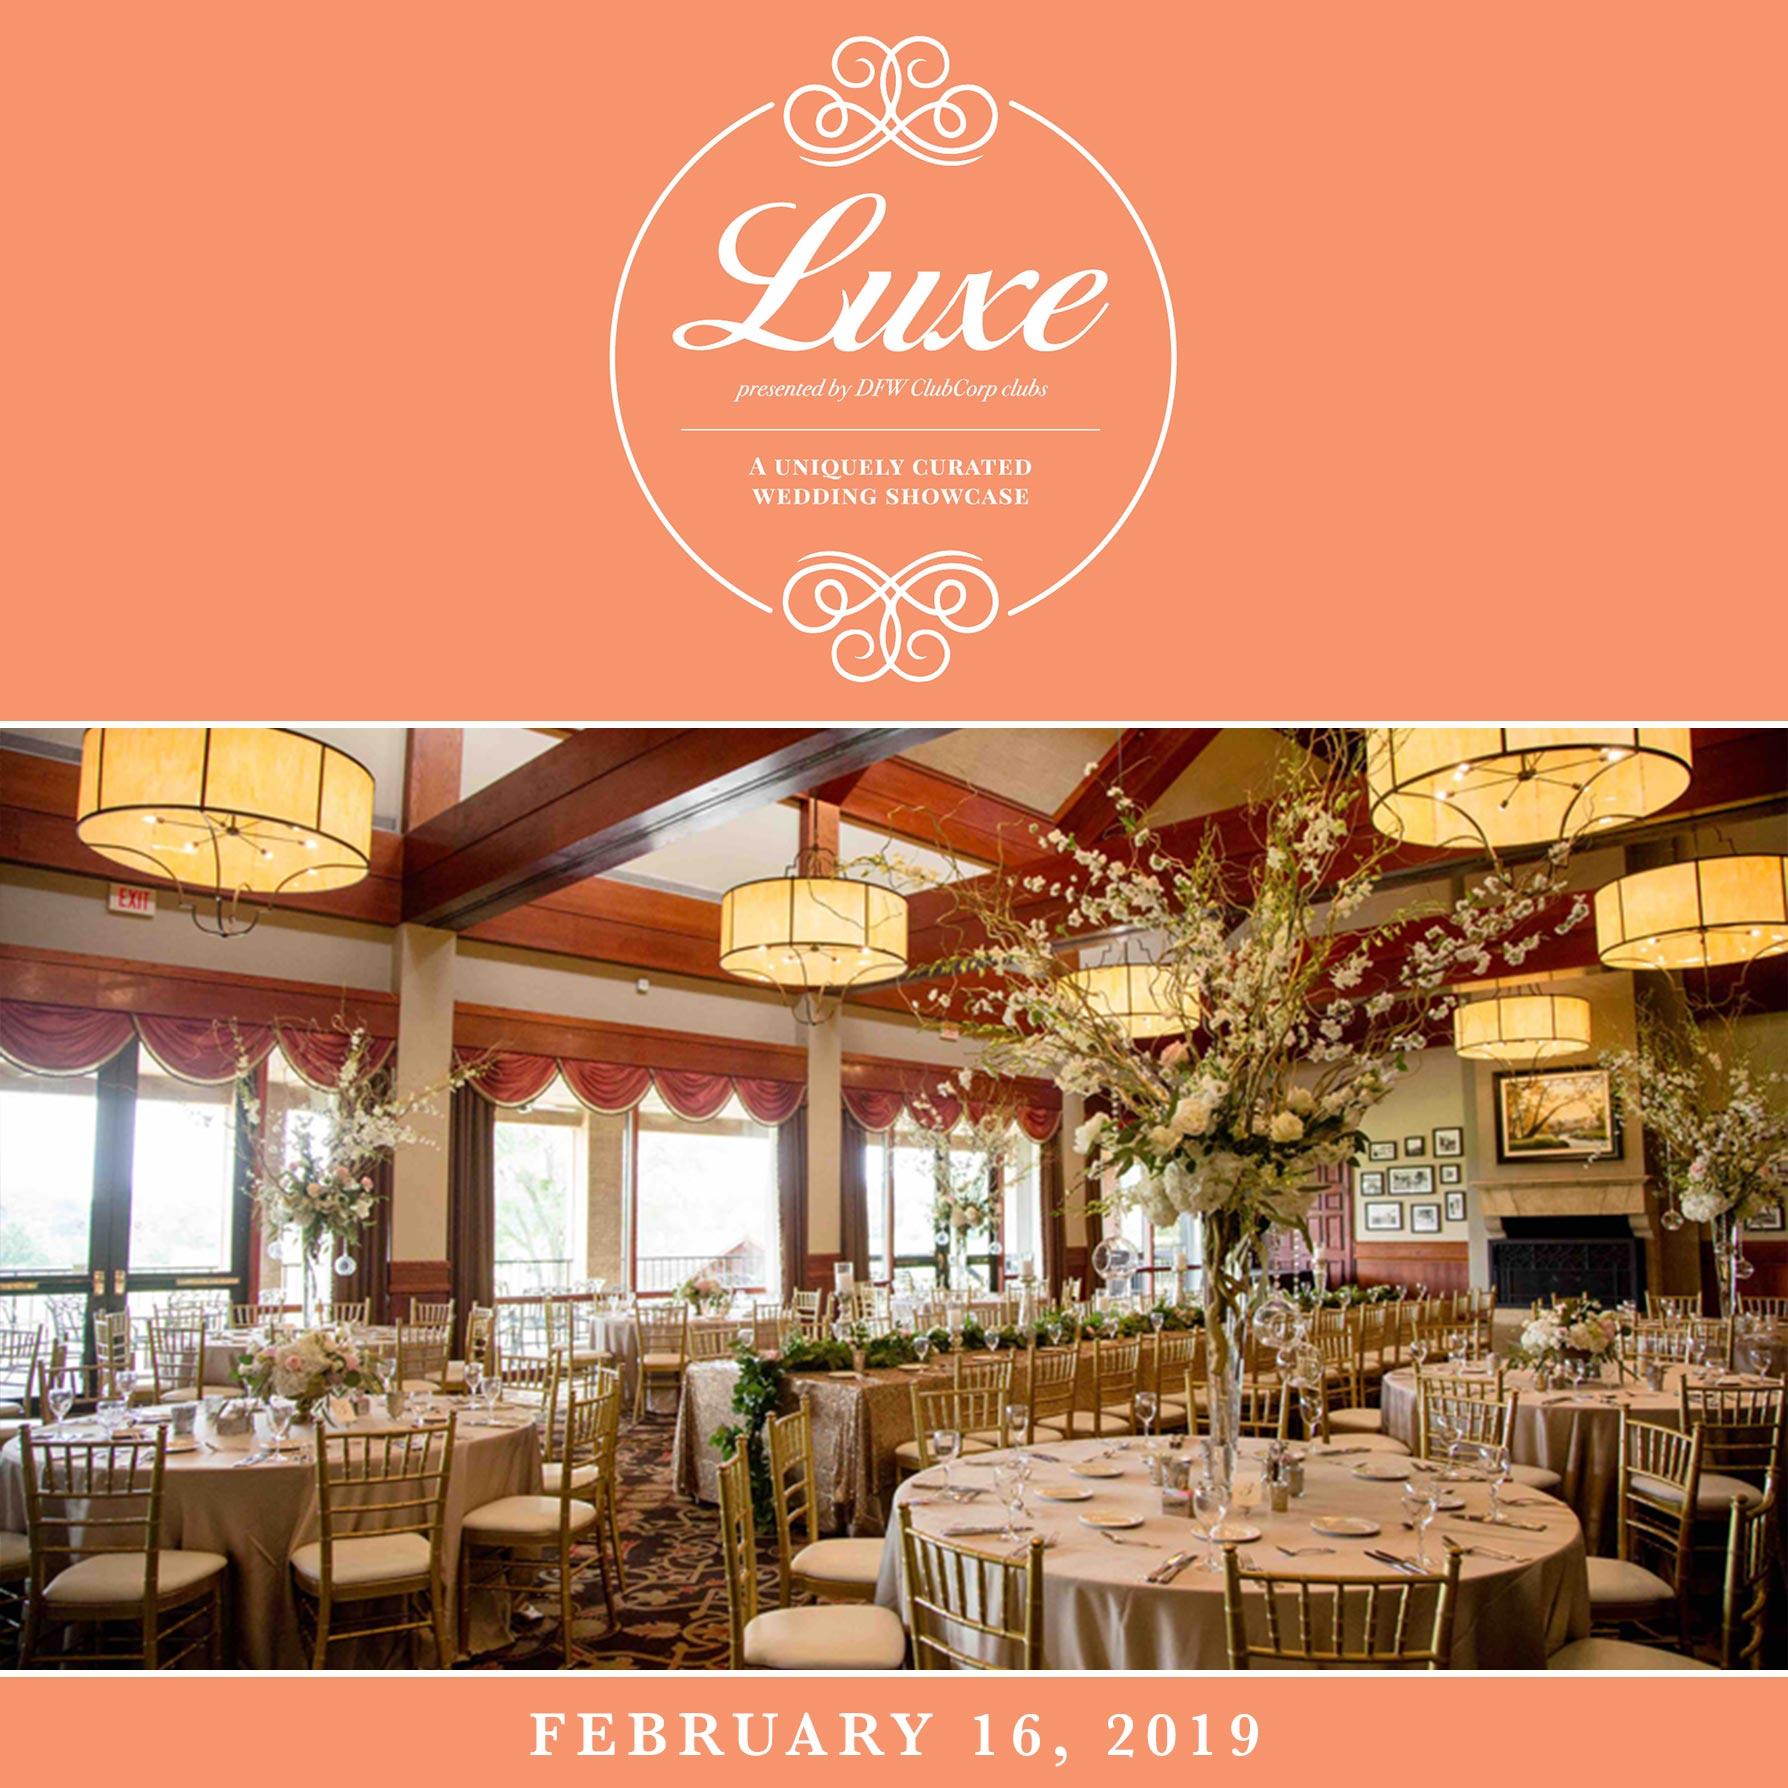 Tour DFW's Finest Country Clubs at Club Corp's Luxe Wedding Showcase!